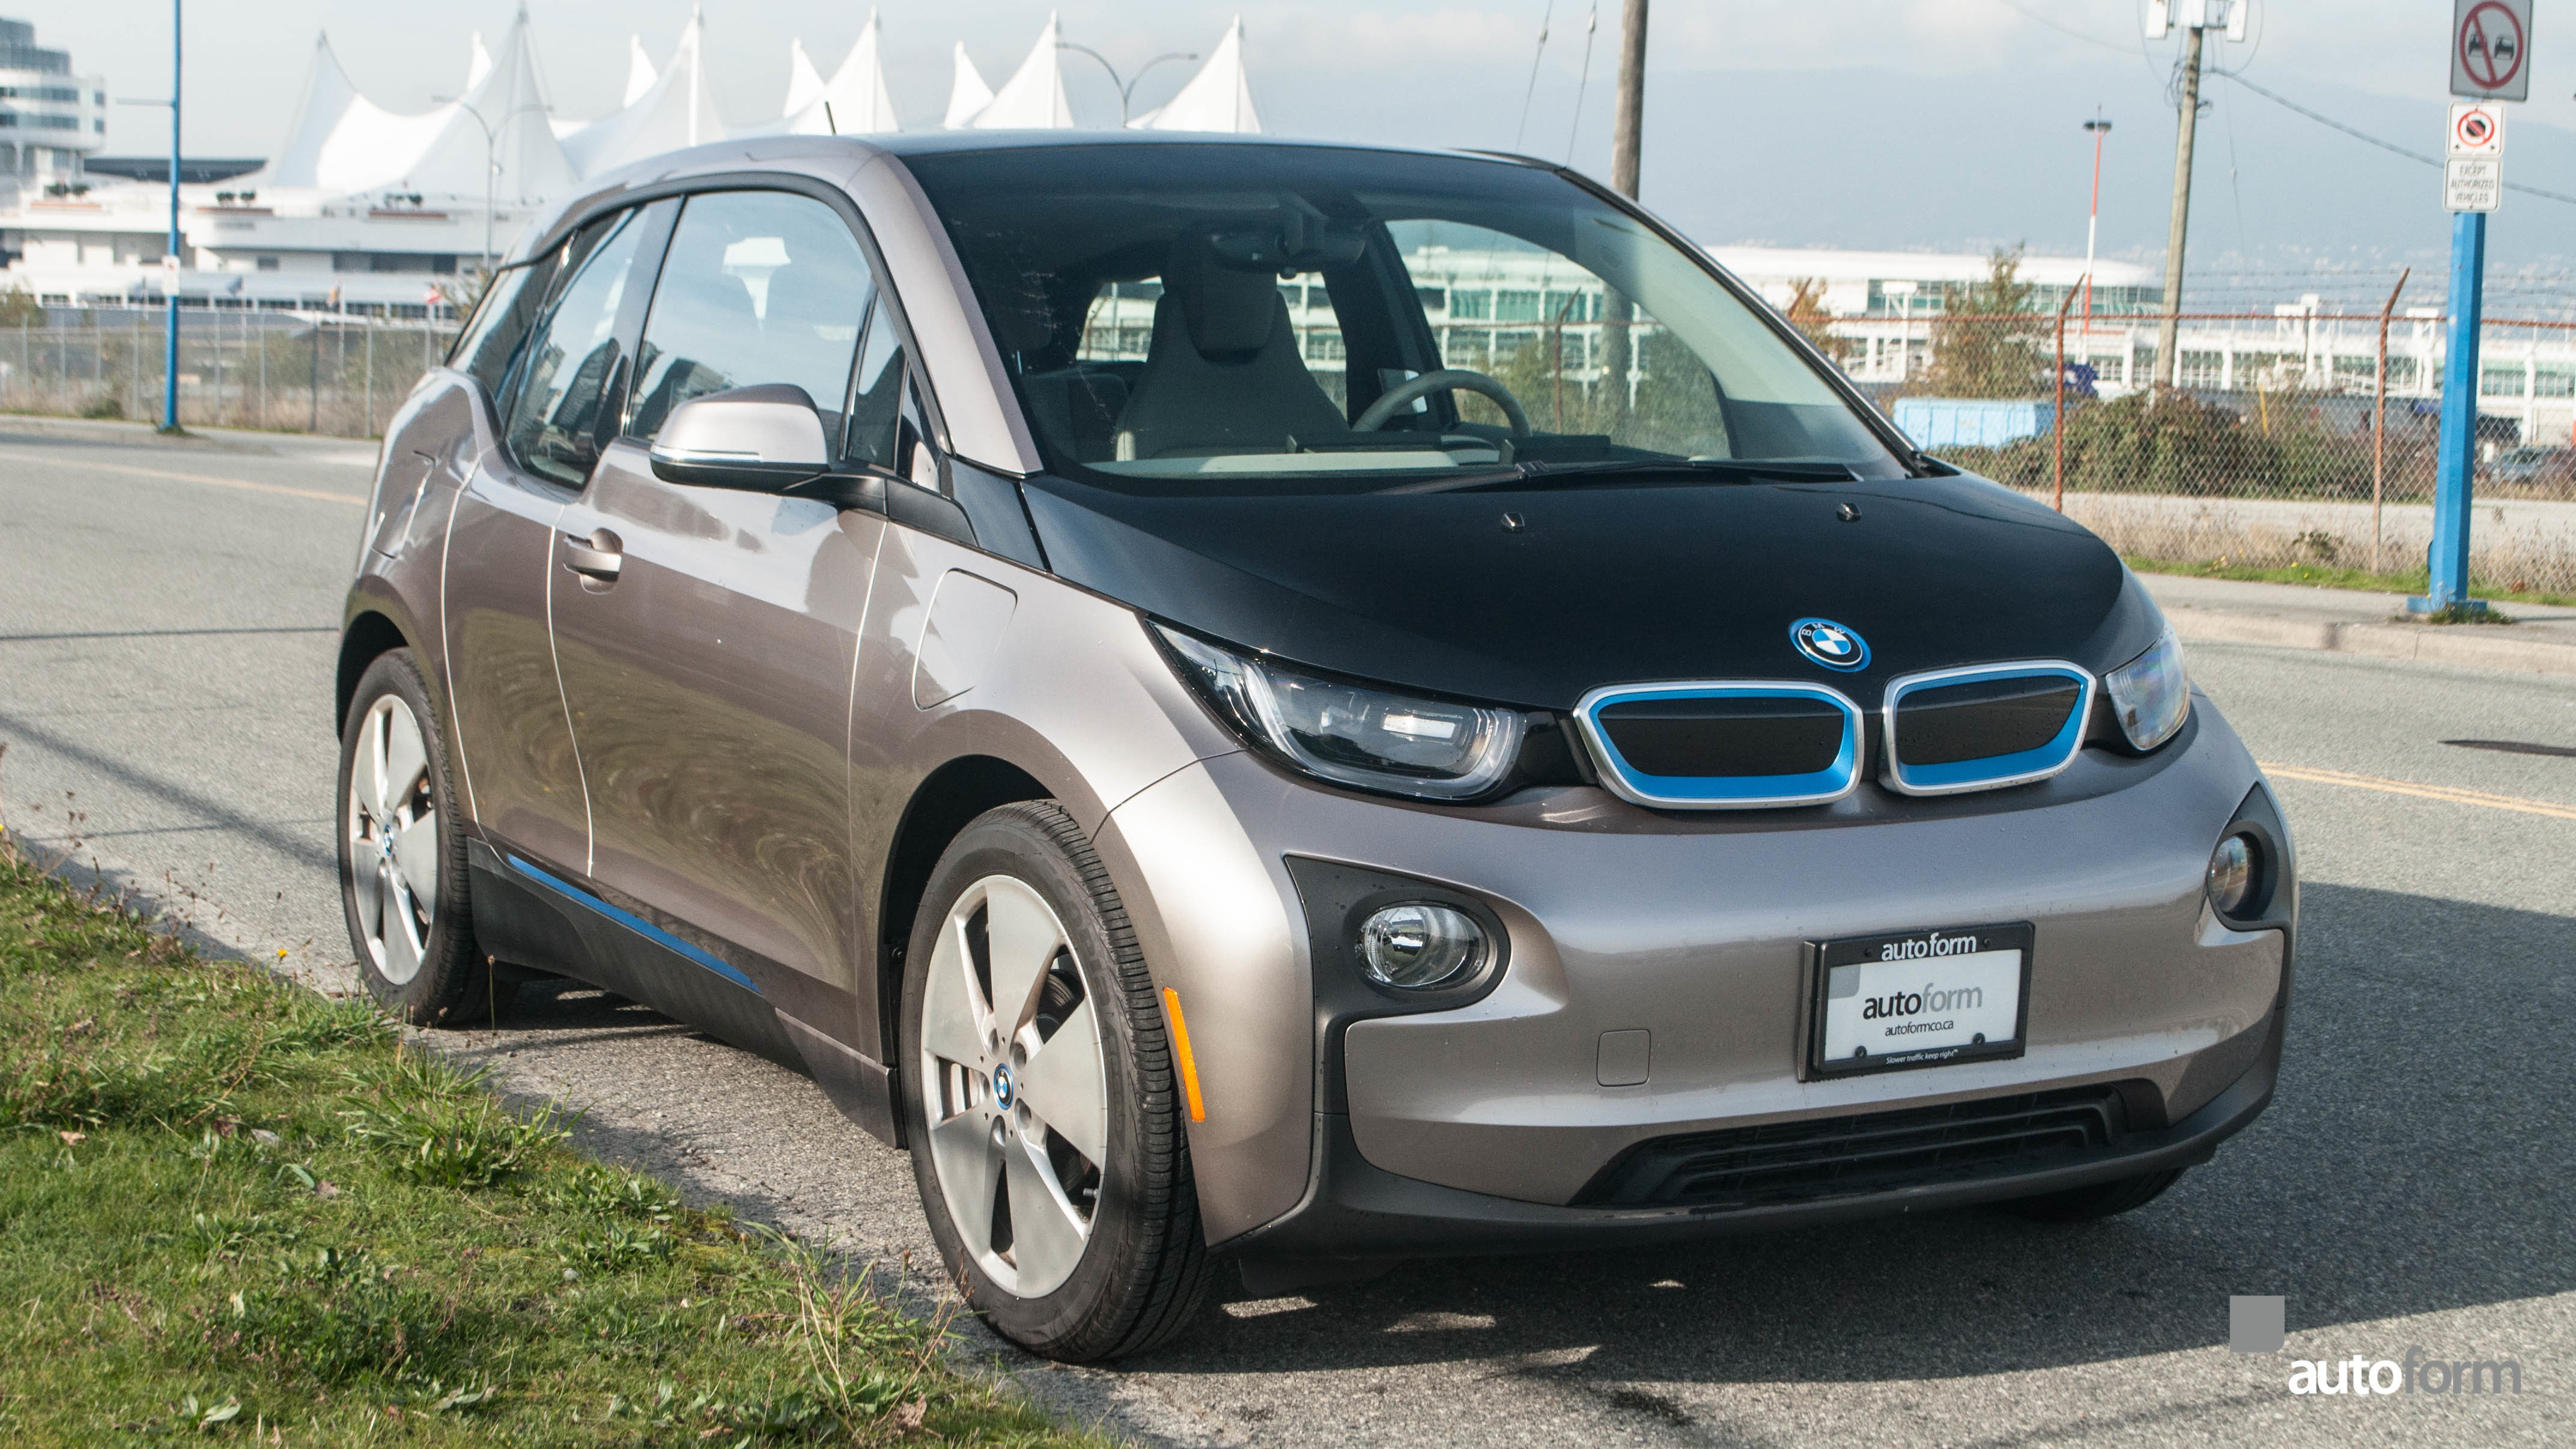 2014 bmw i3 rex autoform. Black Bedroom Furniture Sets. Home Design Ideas